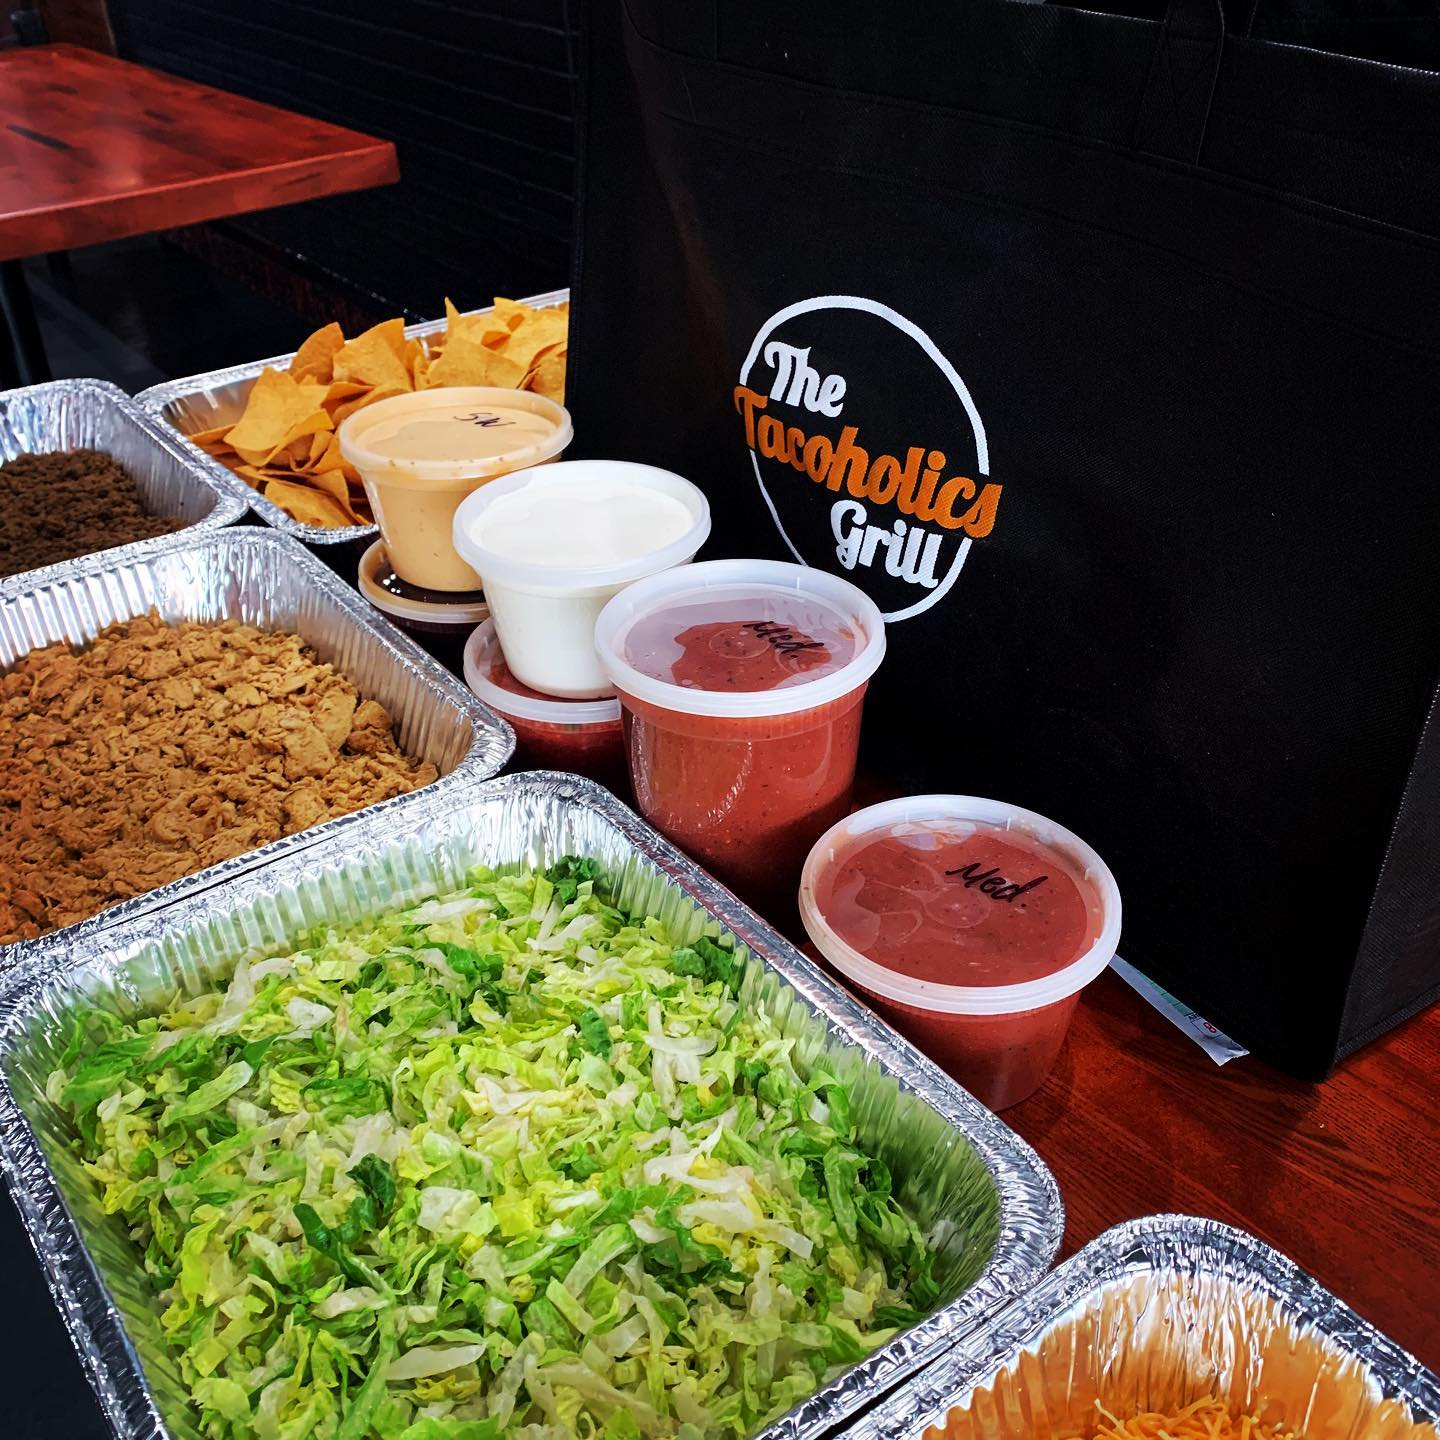 tacoholics catering including trays of beef, chicken, lettuce, chips, and jars of salsa, sour cream, and queso